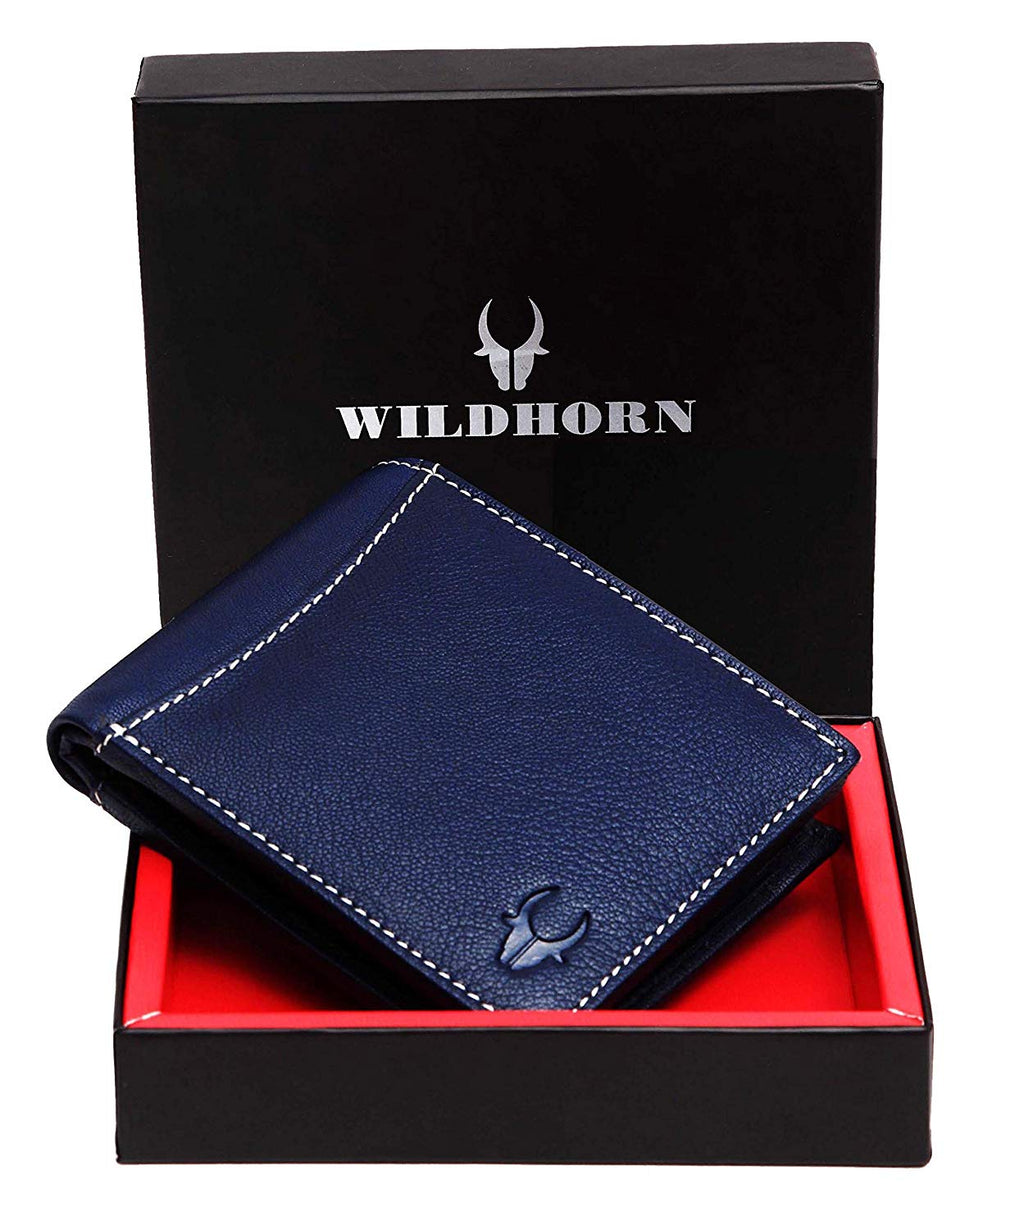 WildHorn Blue Men's Wallet - WILDHORN